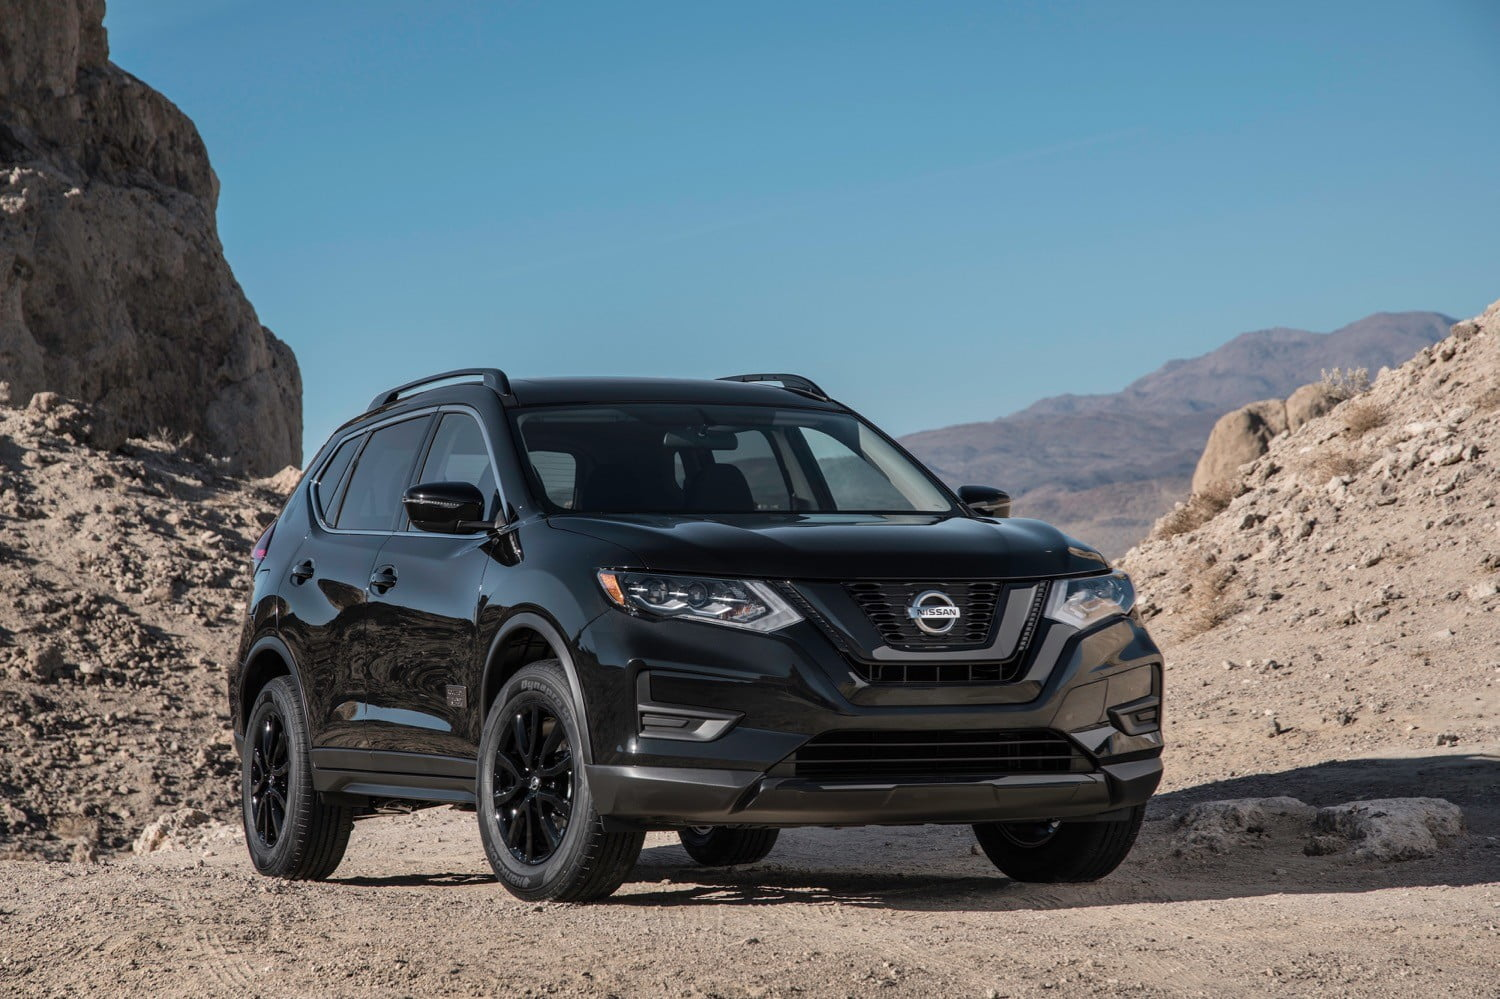 2017 nissan rogue one star wars limited edition gets themed